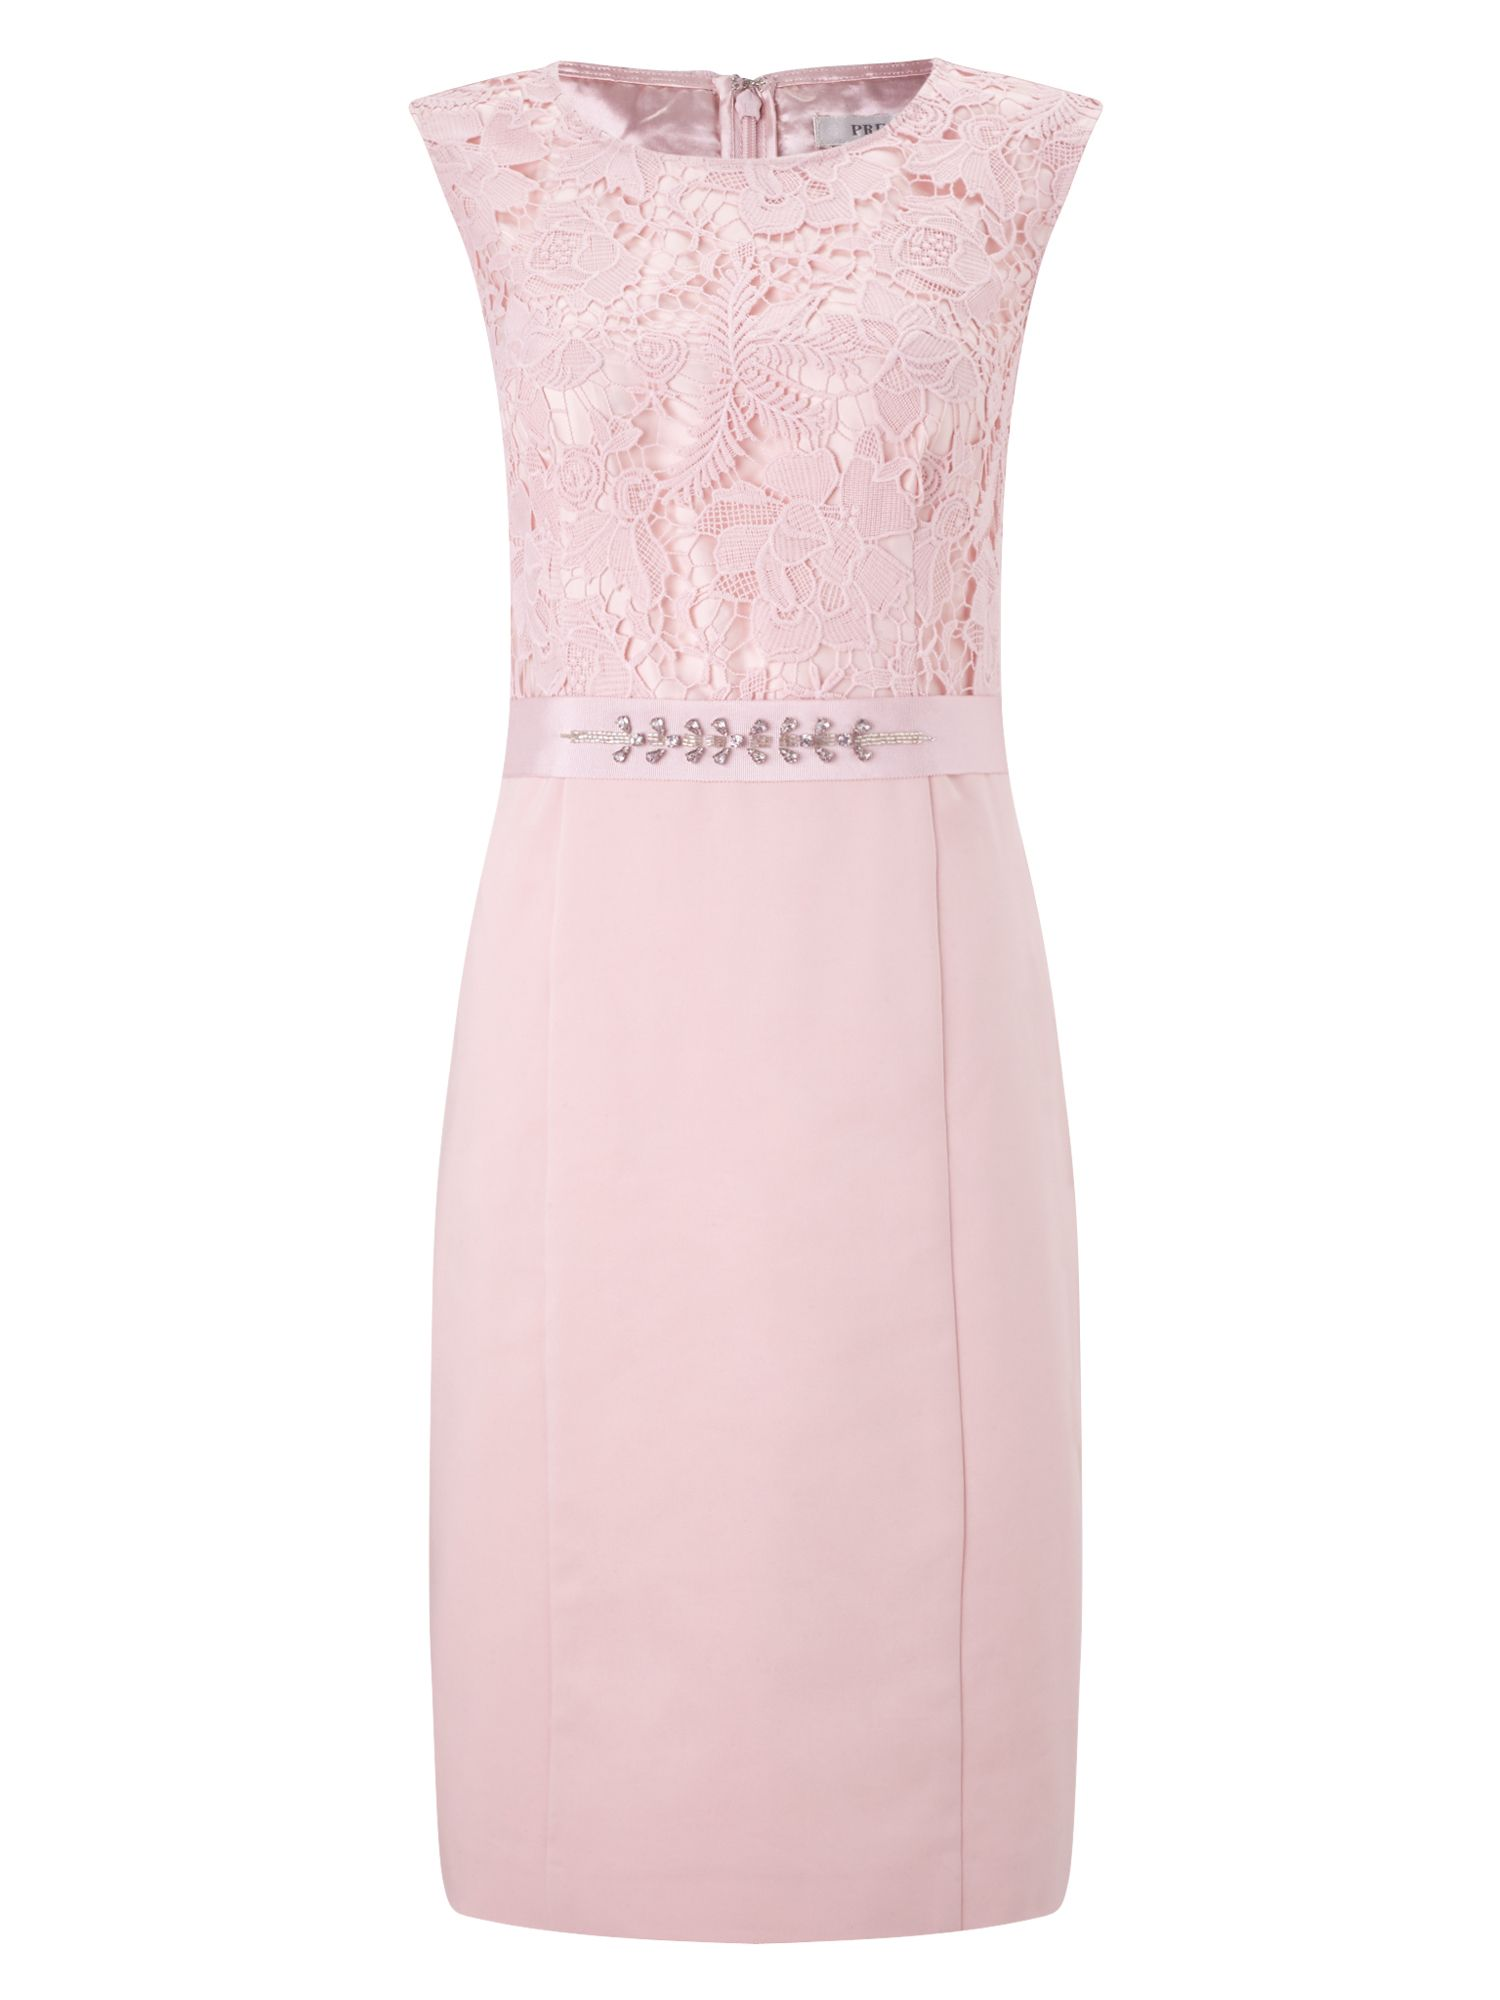 Pink lace bodice dresspink lace bodice dress wedding guestwhat do